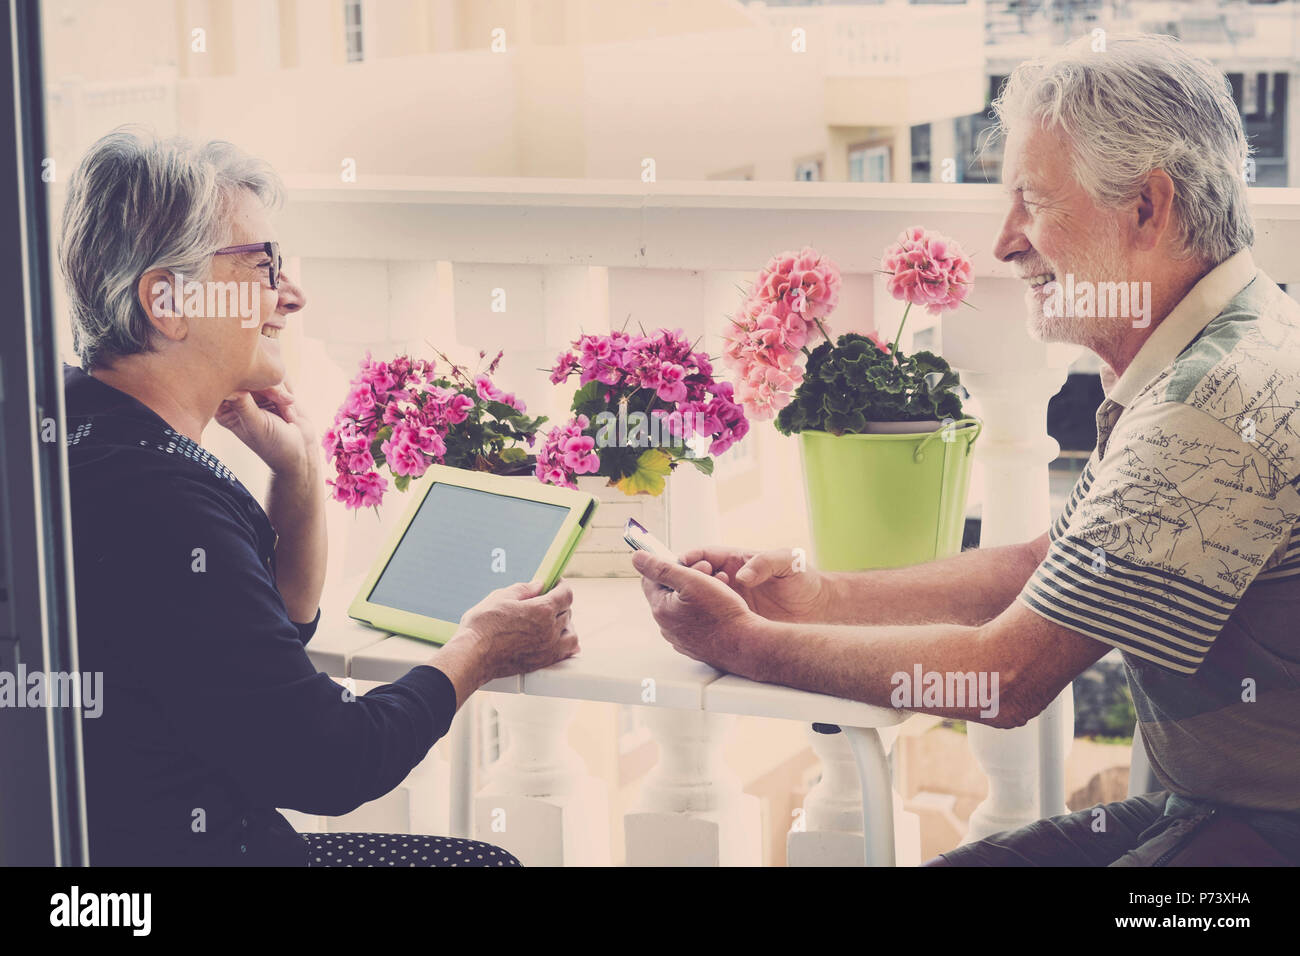 senior happy caucasian couple in outdoor leisure activity using technology ti chat work and do videoconference with friends. lifestyle at home in mode - Stock Image